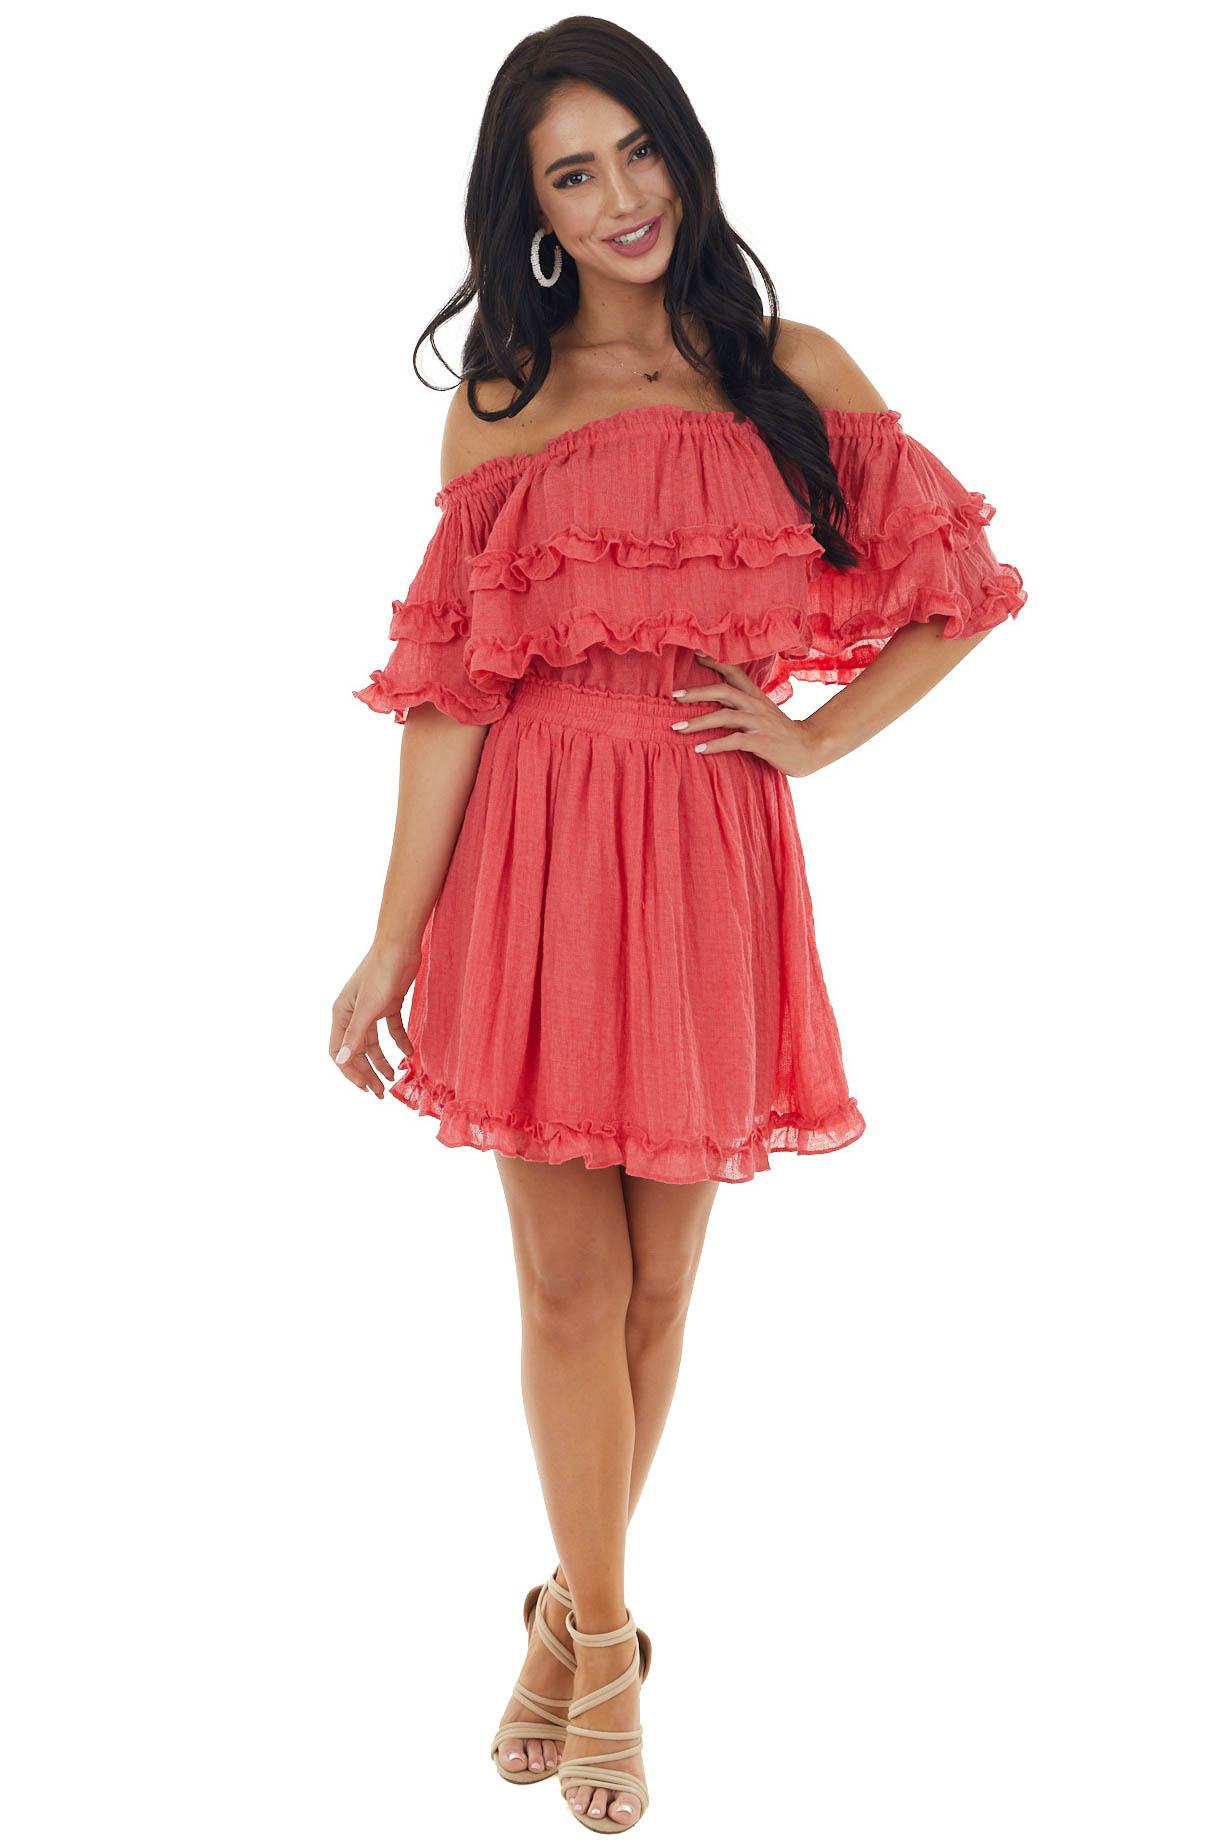 Watermelon Off The Shoulder Short Dress with Ruffle Details